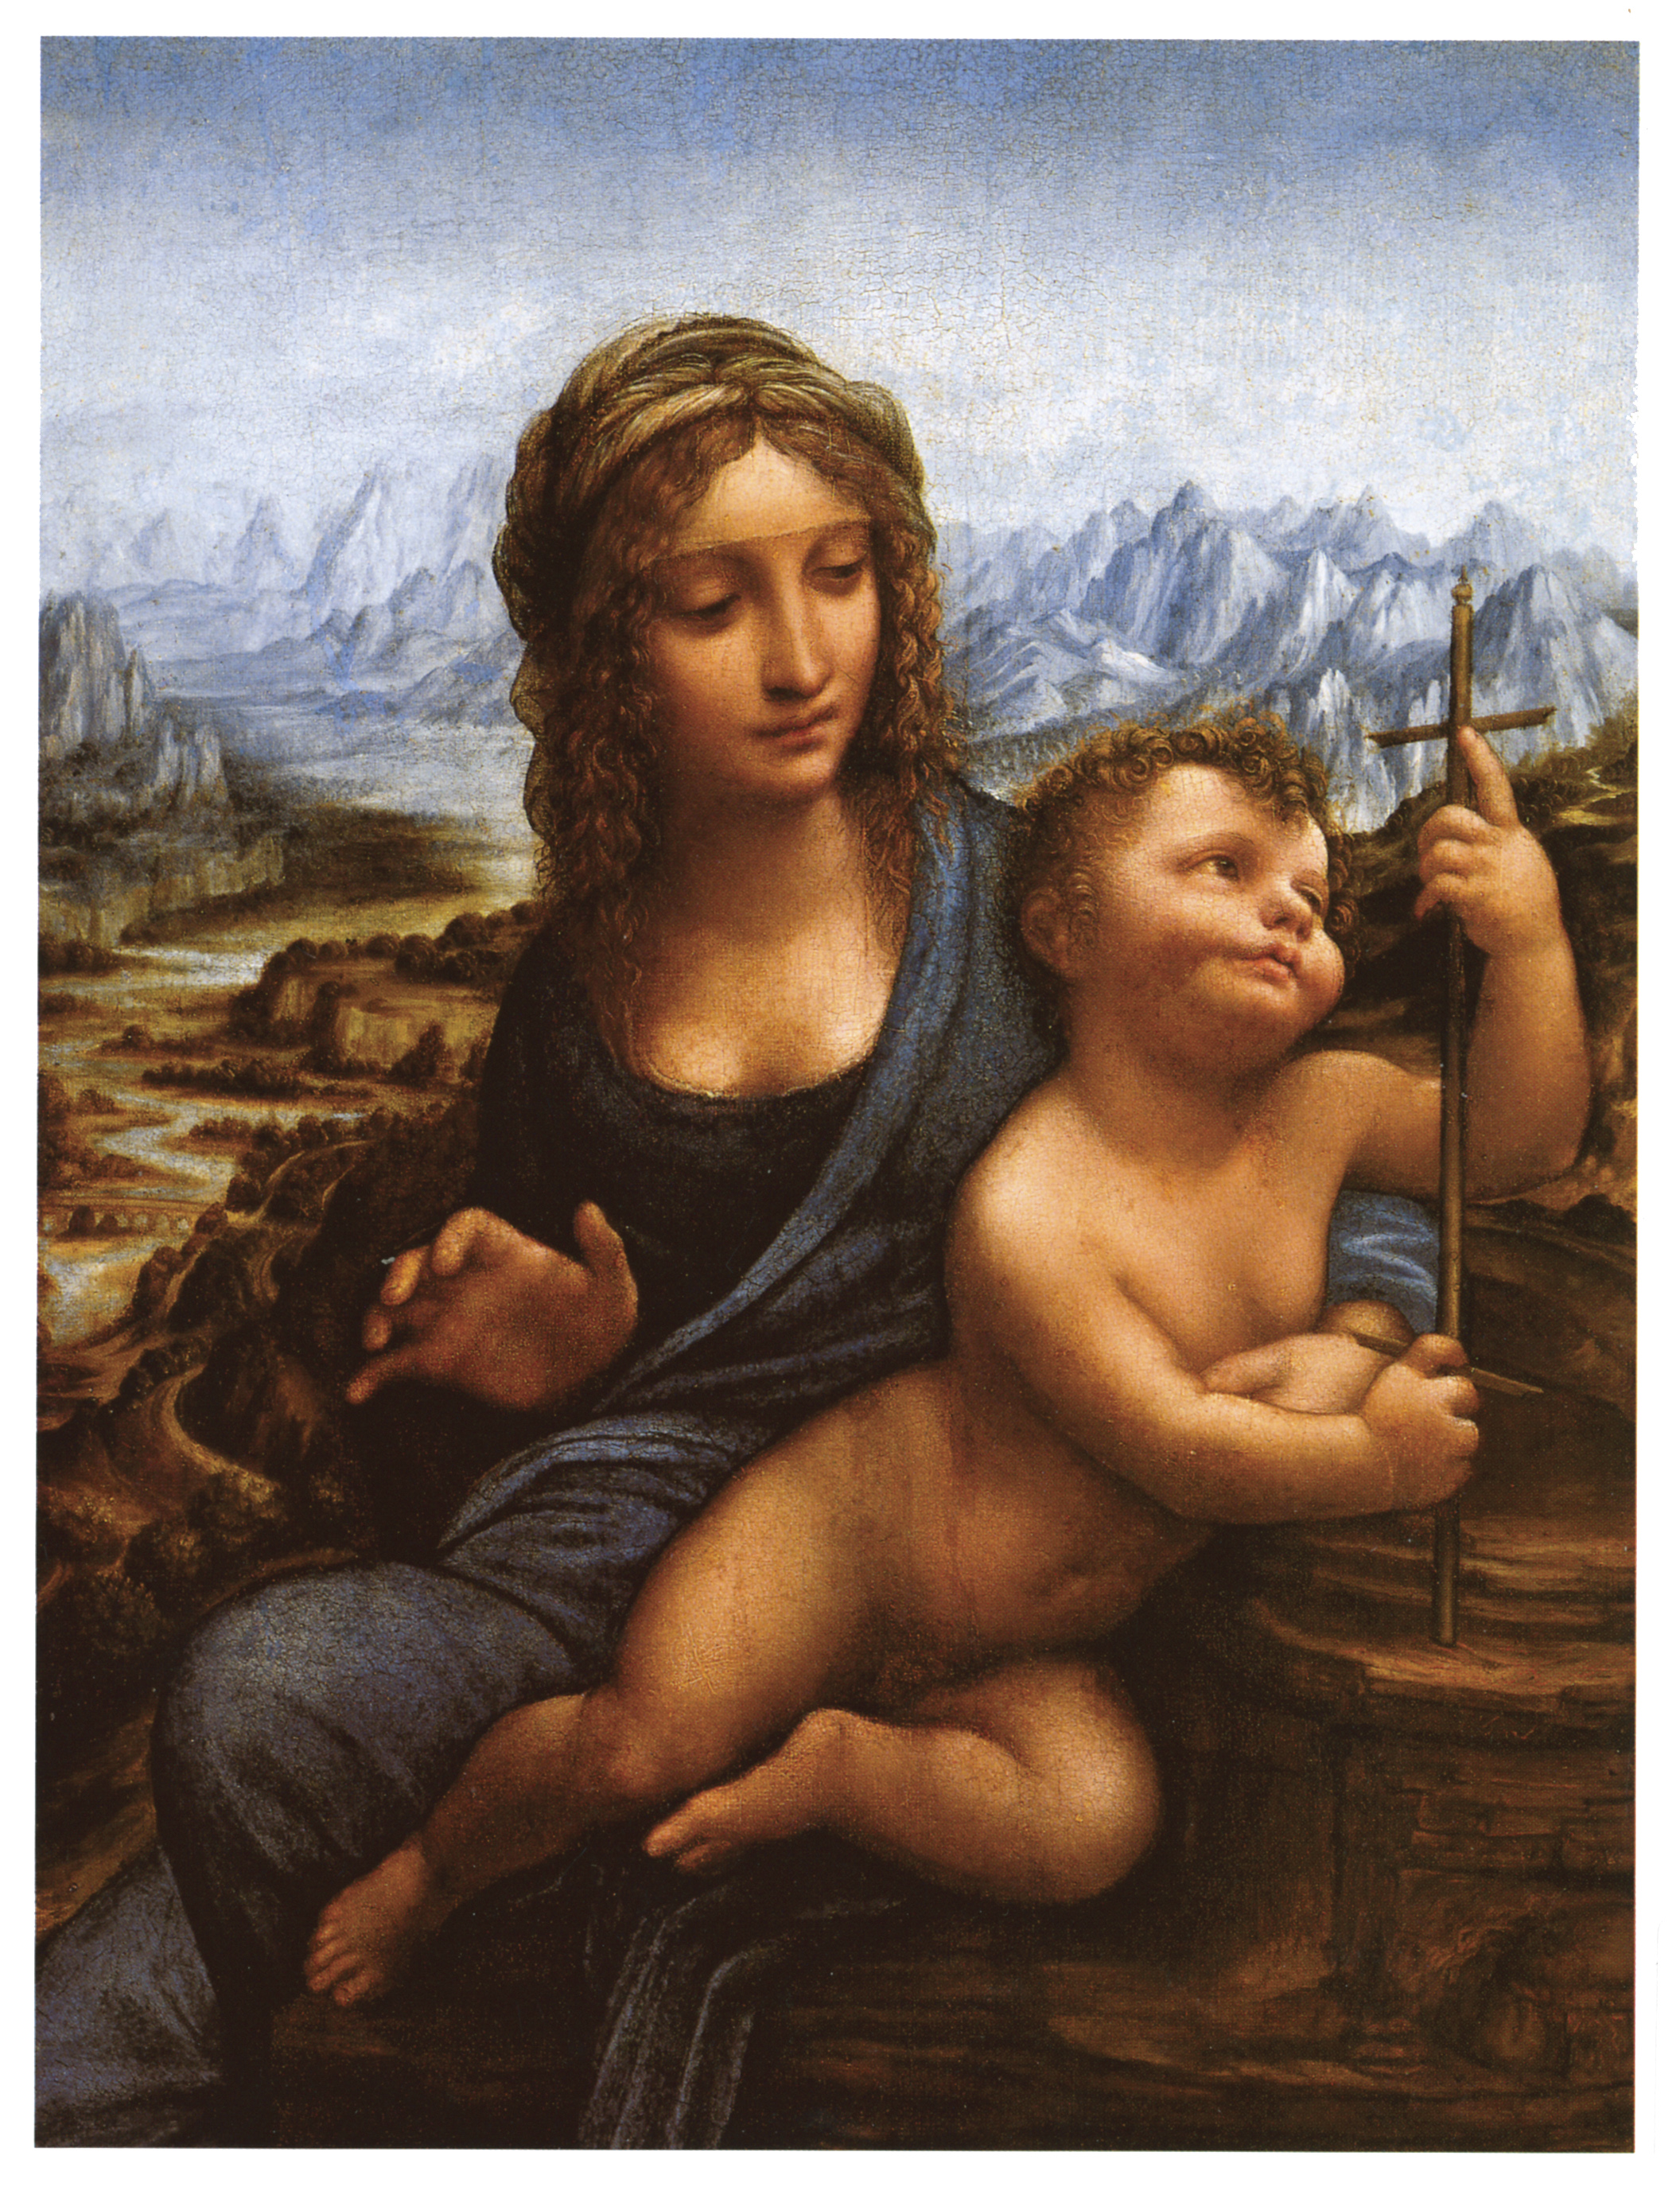 https://upload.wikimedia.org/wikipedia/commons/7/73/Madonna_of_the_Yarnwinder.jpg